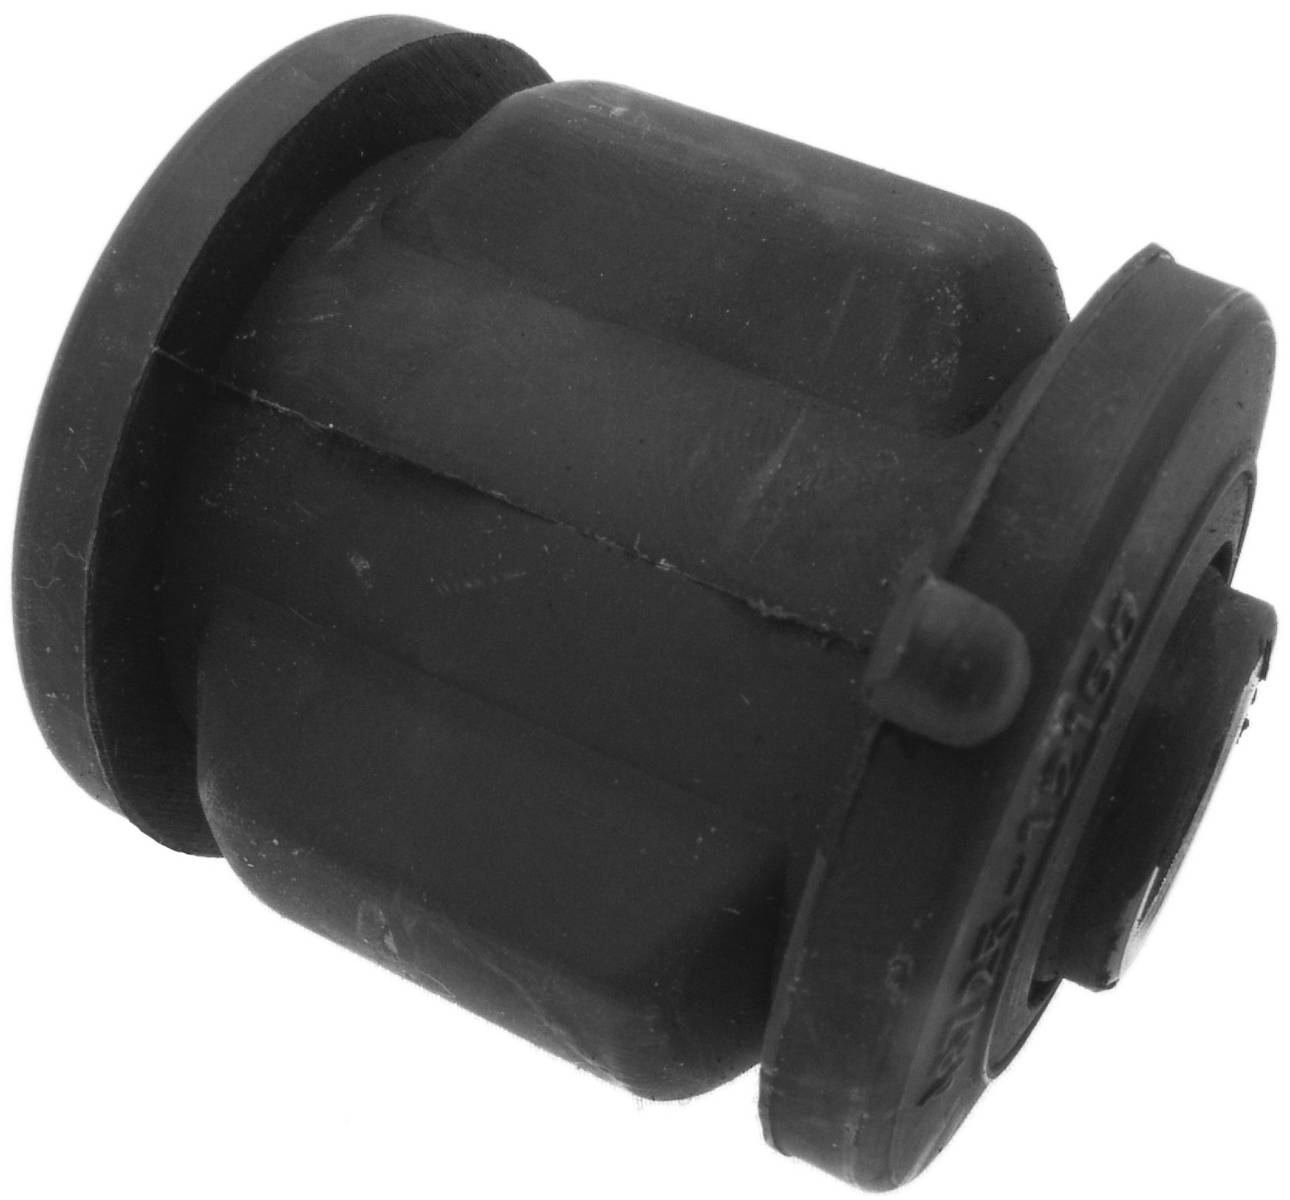 Febest 2007 Toyota Camry - Suspension Knuckle Bushing FEBEST # TAB-J520 OEM # 42304-06030 at Sears.com